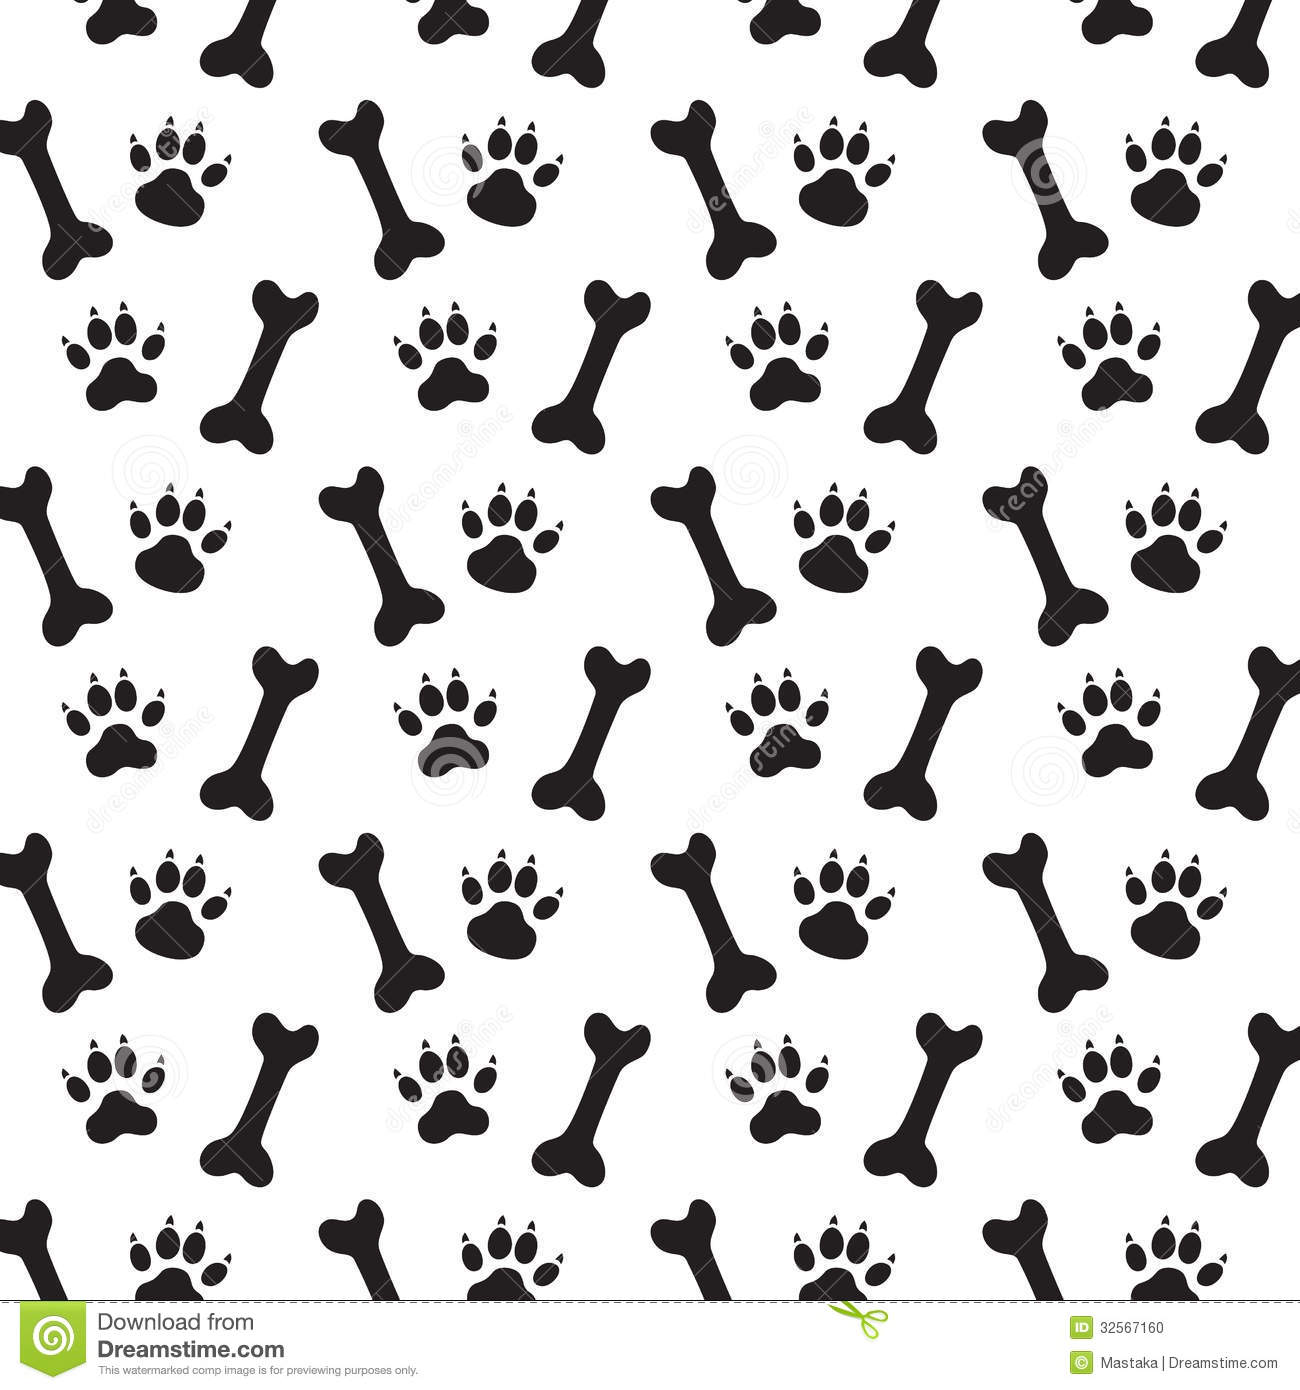 Dog pattern clipart.